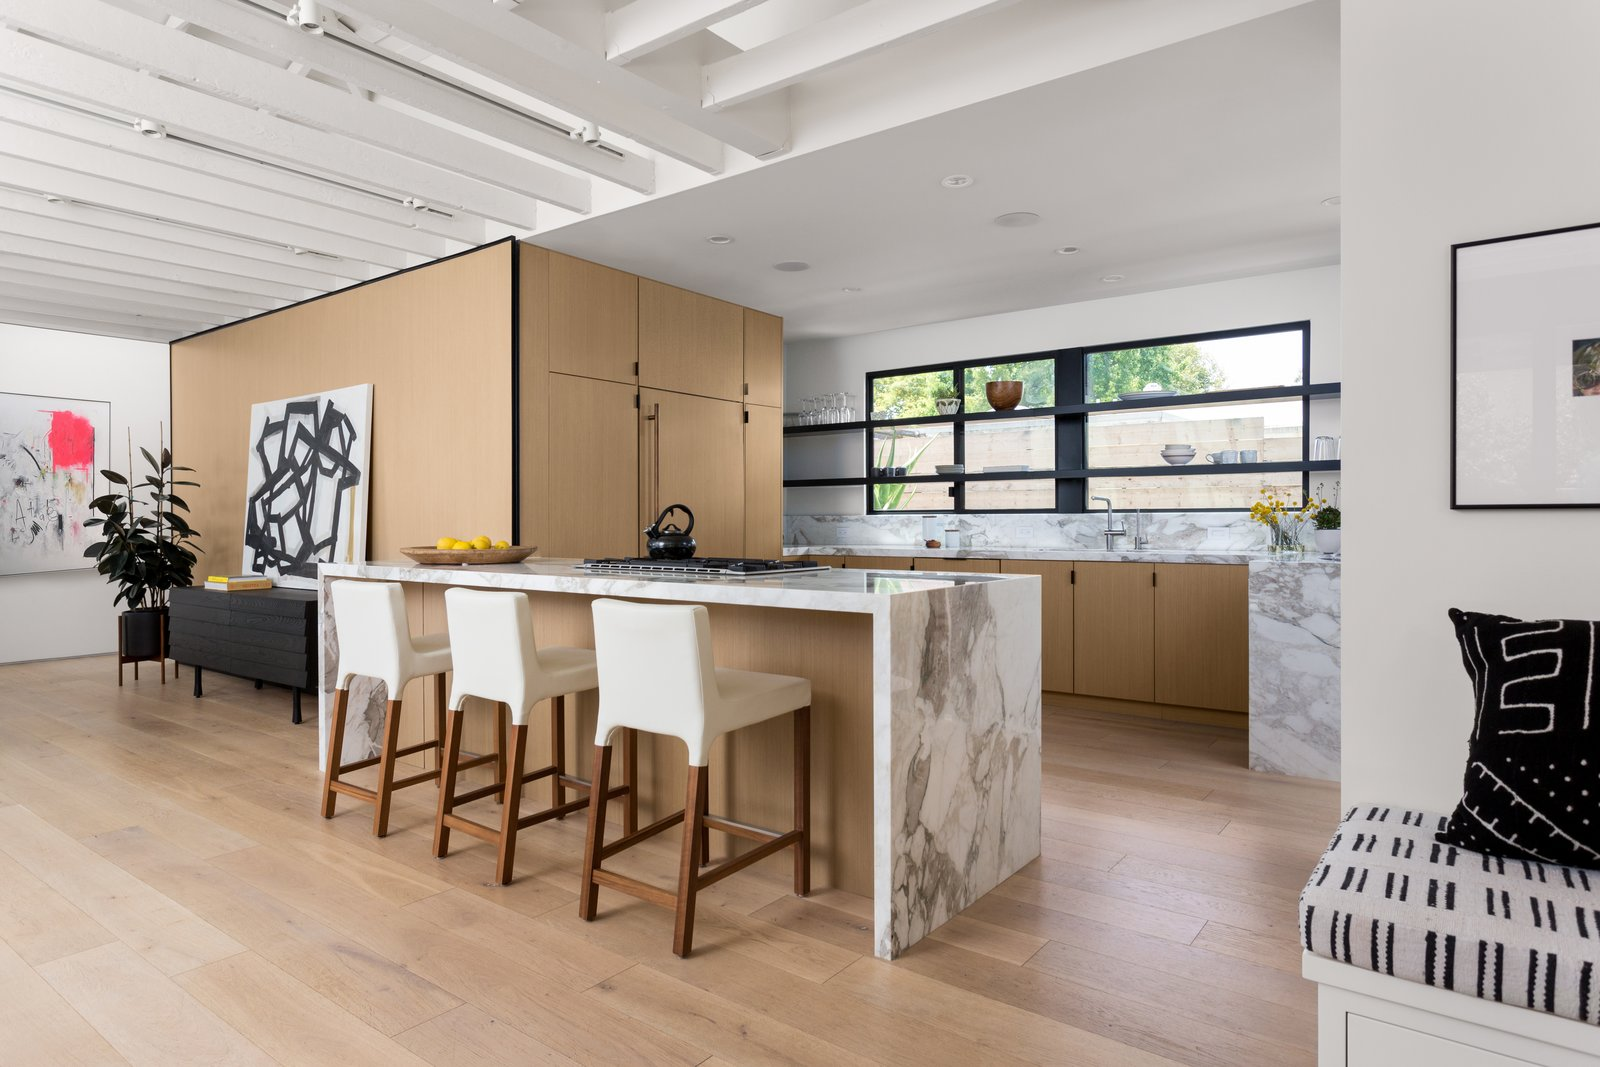 Kitchen, Range, Marble, Wood, Light Hardwood, Marble, Track, and Recessed Blu Dot stools line up against calacatta gold extra countertops. The custom cabinetry was outfitted by Semihandmade with Ikea cabinet bodies.  Best Kitchen Track Marble Photos from The Woman Who Grew Up in This L.A. Home Returned to Give it a Stunning Renovation